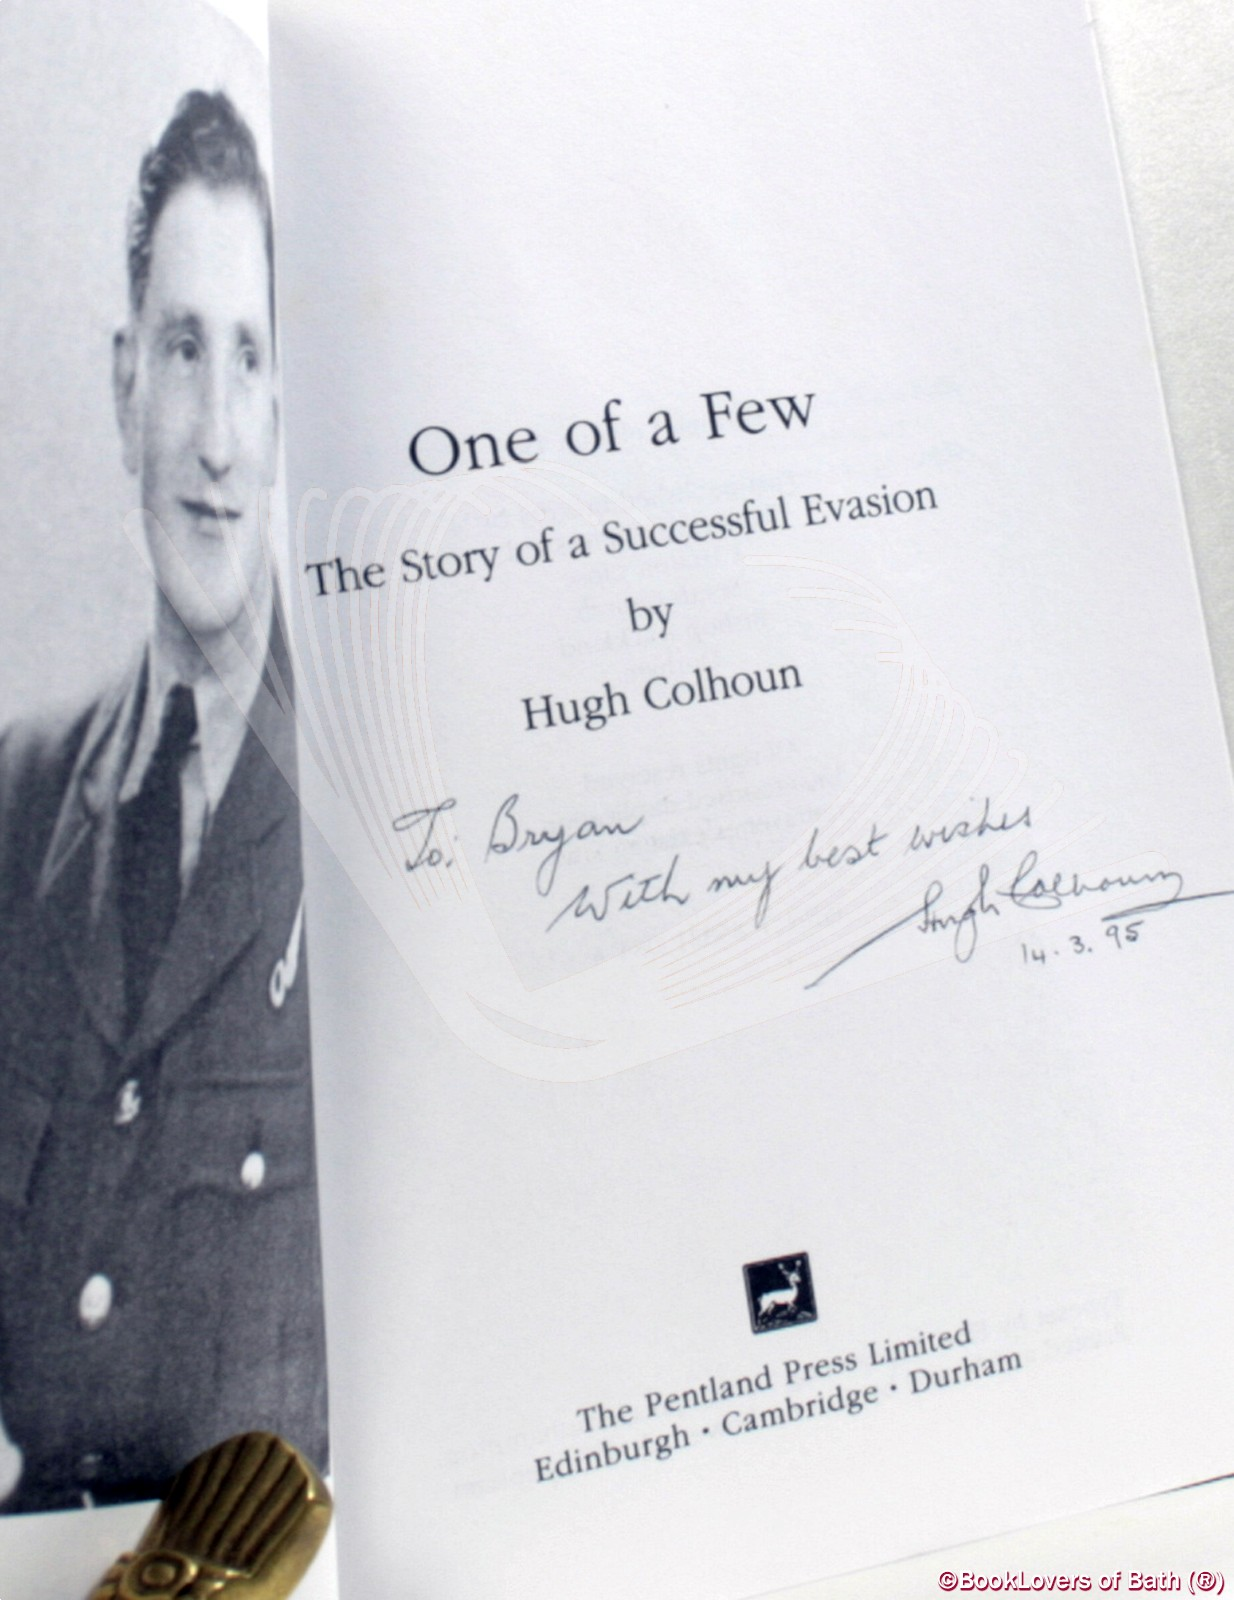 One of a Few: The Story of a Successful Evasion - Hugh Colhoun